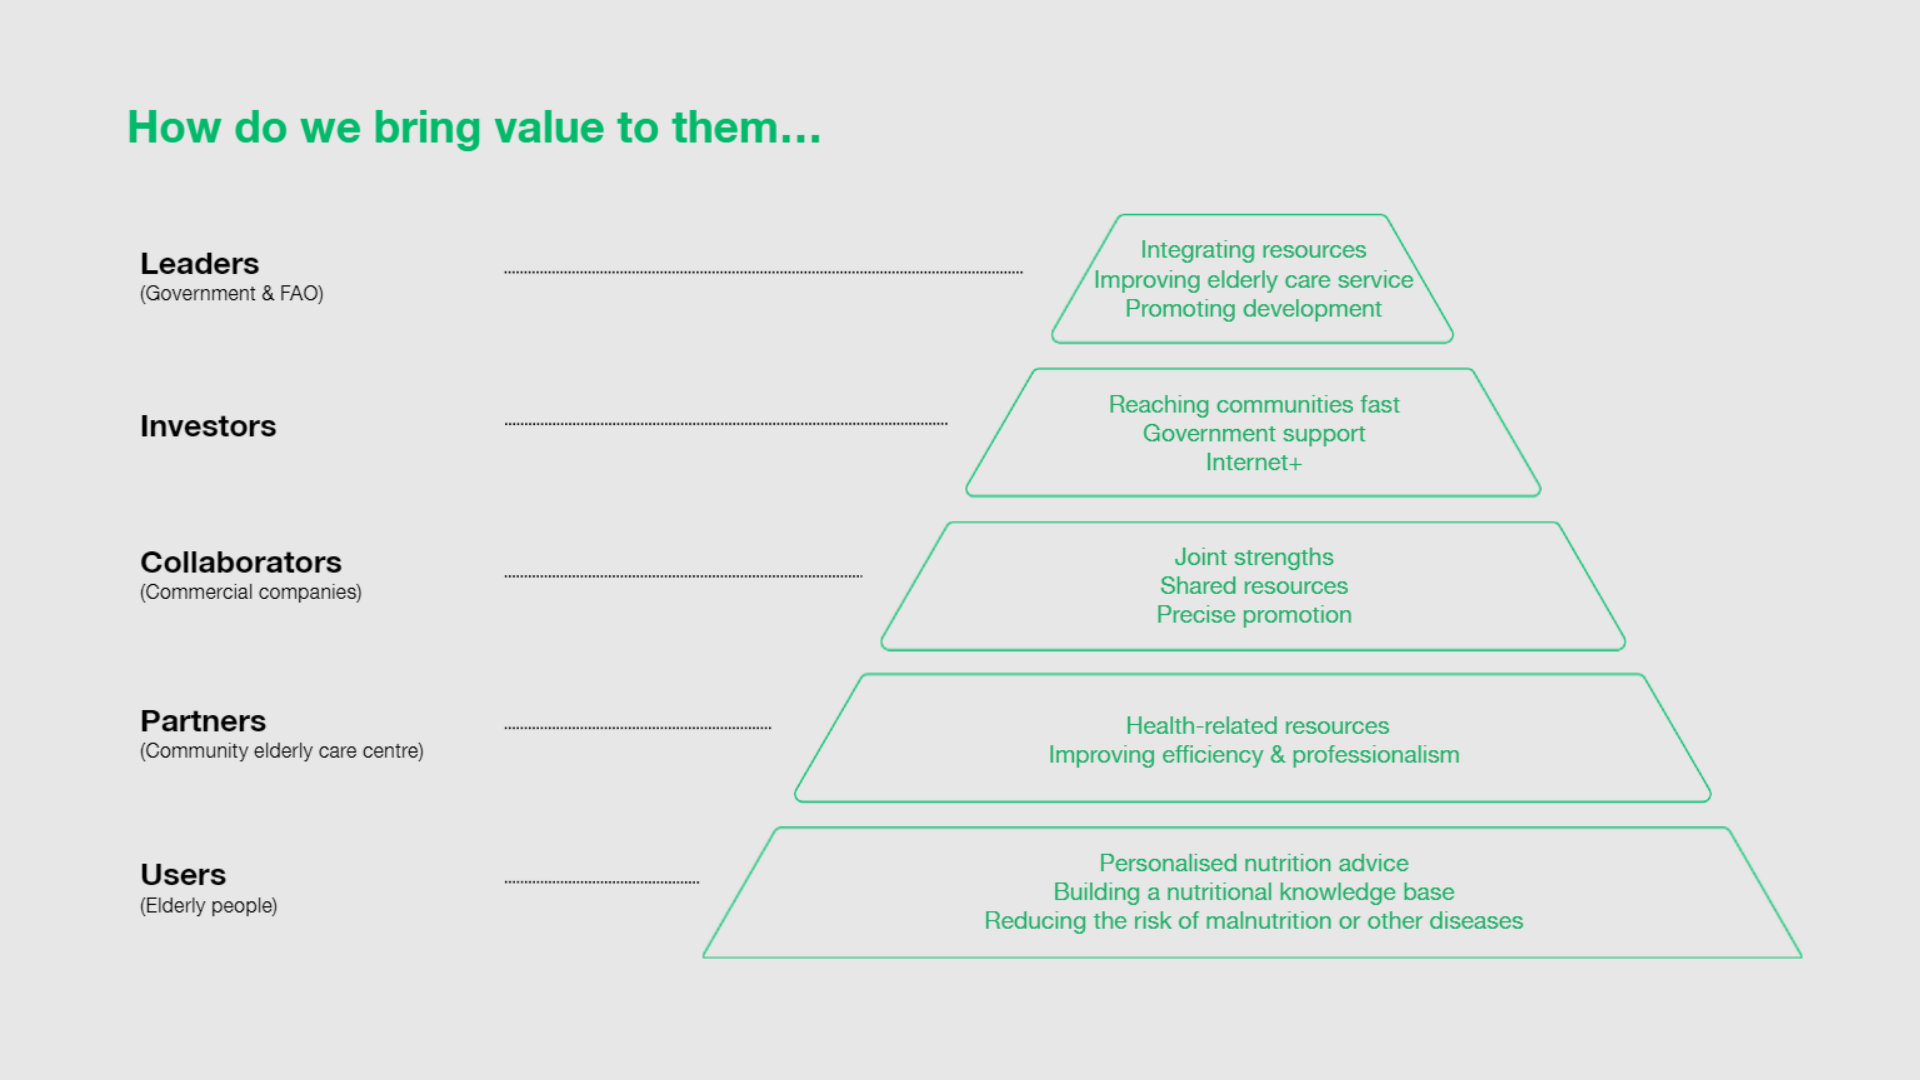 The values we offer